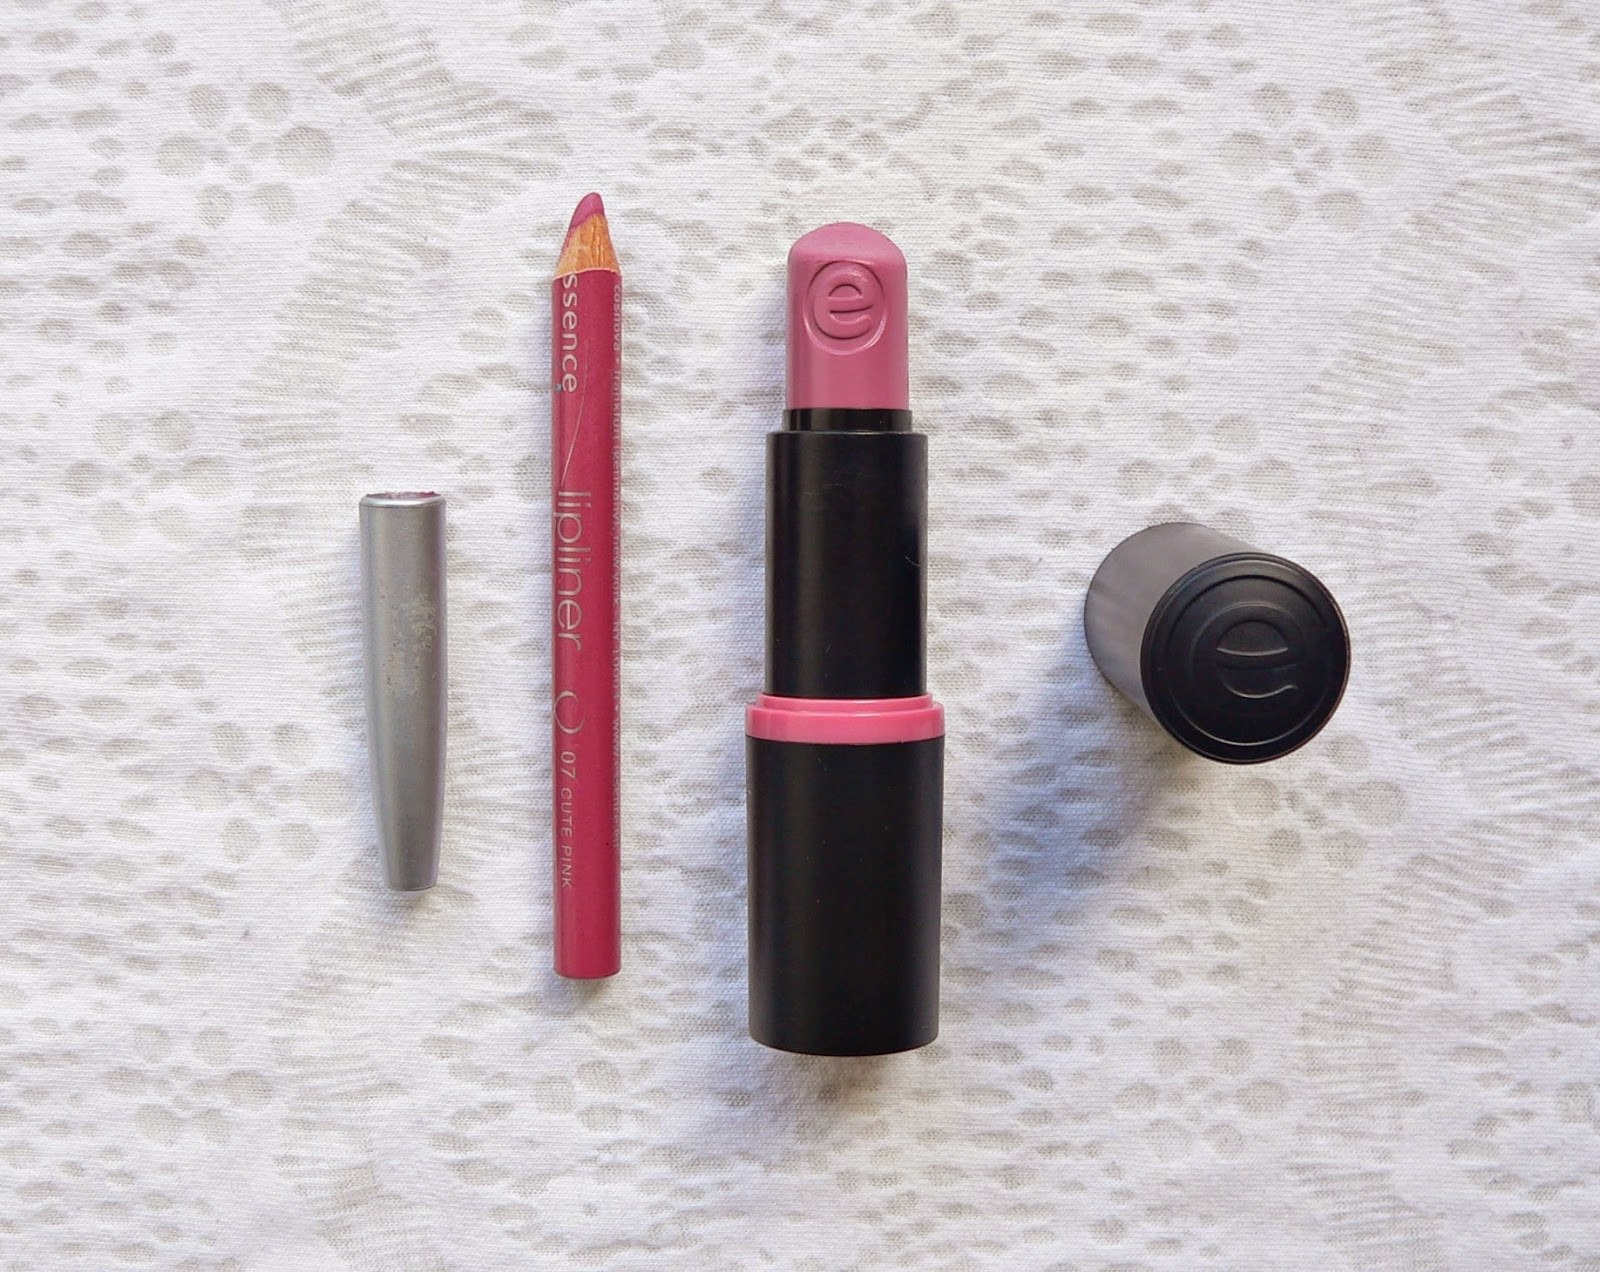 Budget, Lipstick, Lipliner, Review, Make-up, Essence, 07, Cute Pink, Kylie Jenner lips lip, volle lippen, naturel, Essence long lasting lipstick, 07, natural beauty